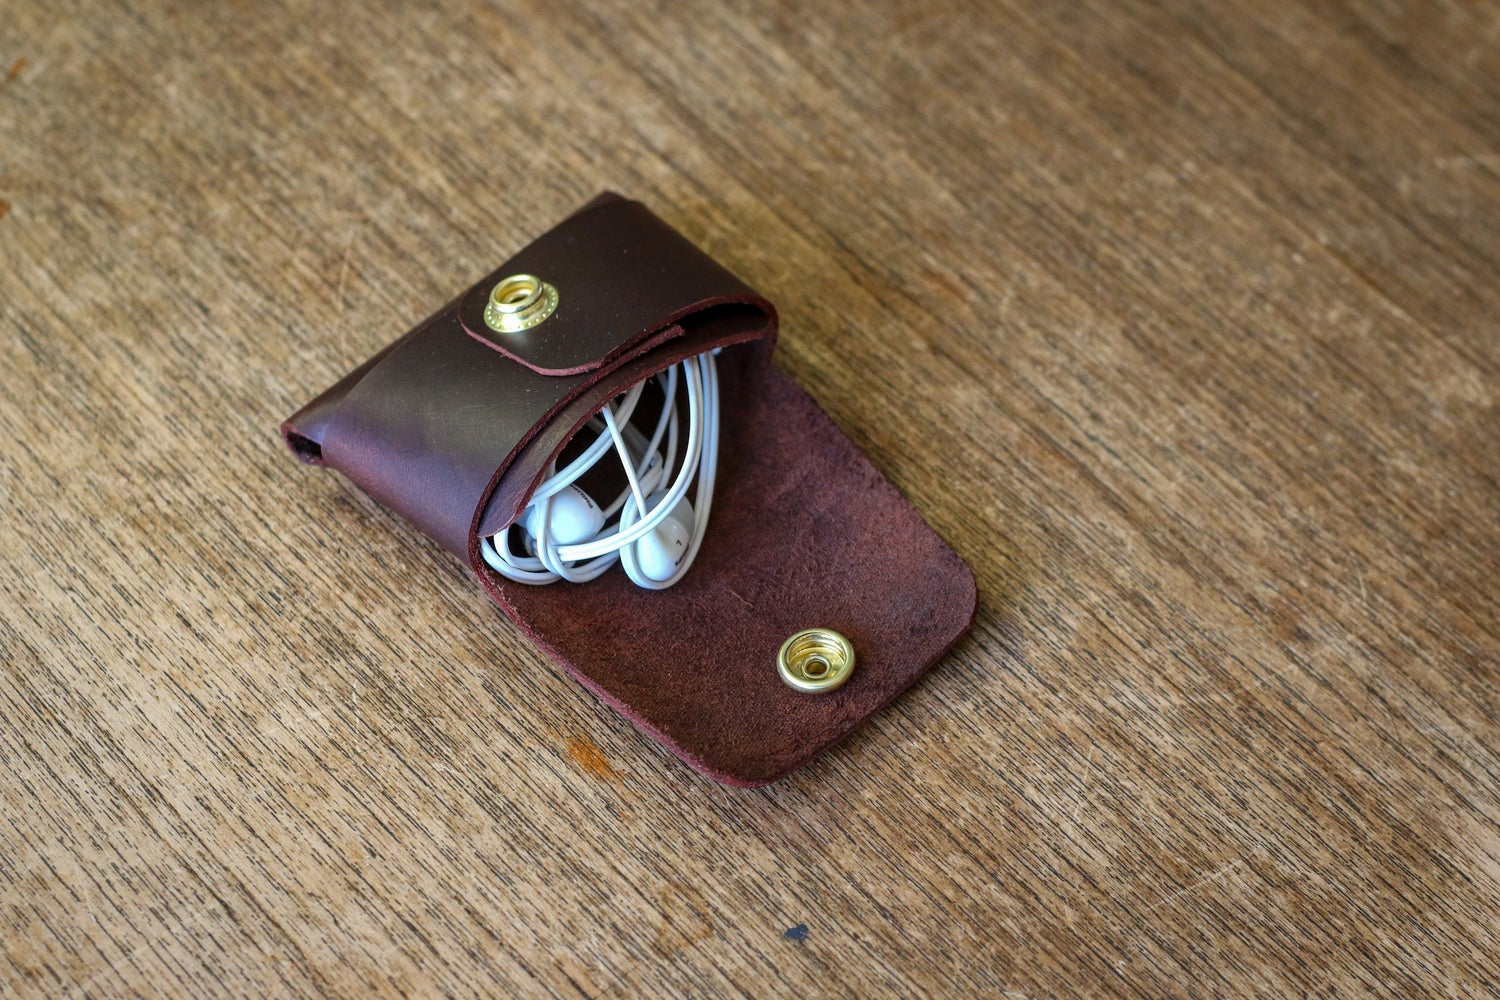 Image of Coin / Headphone Case